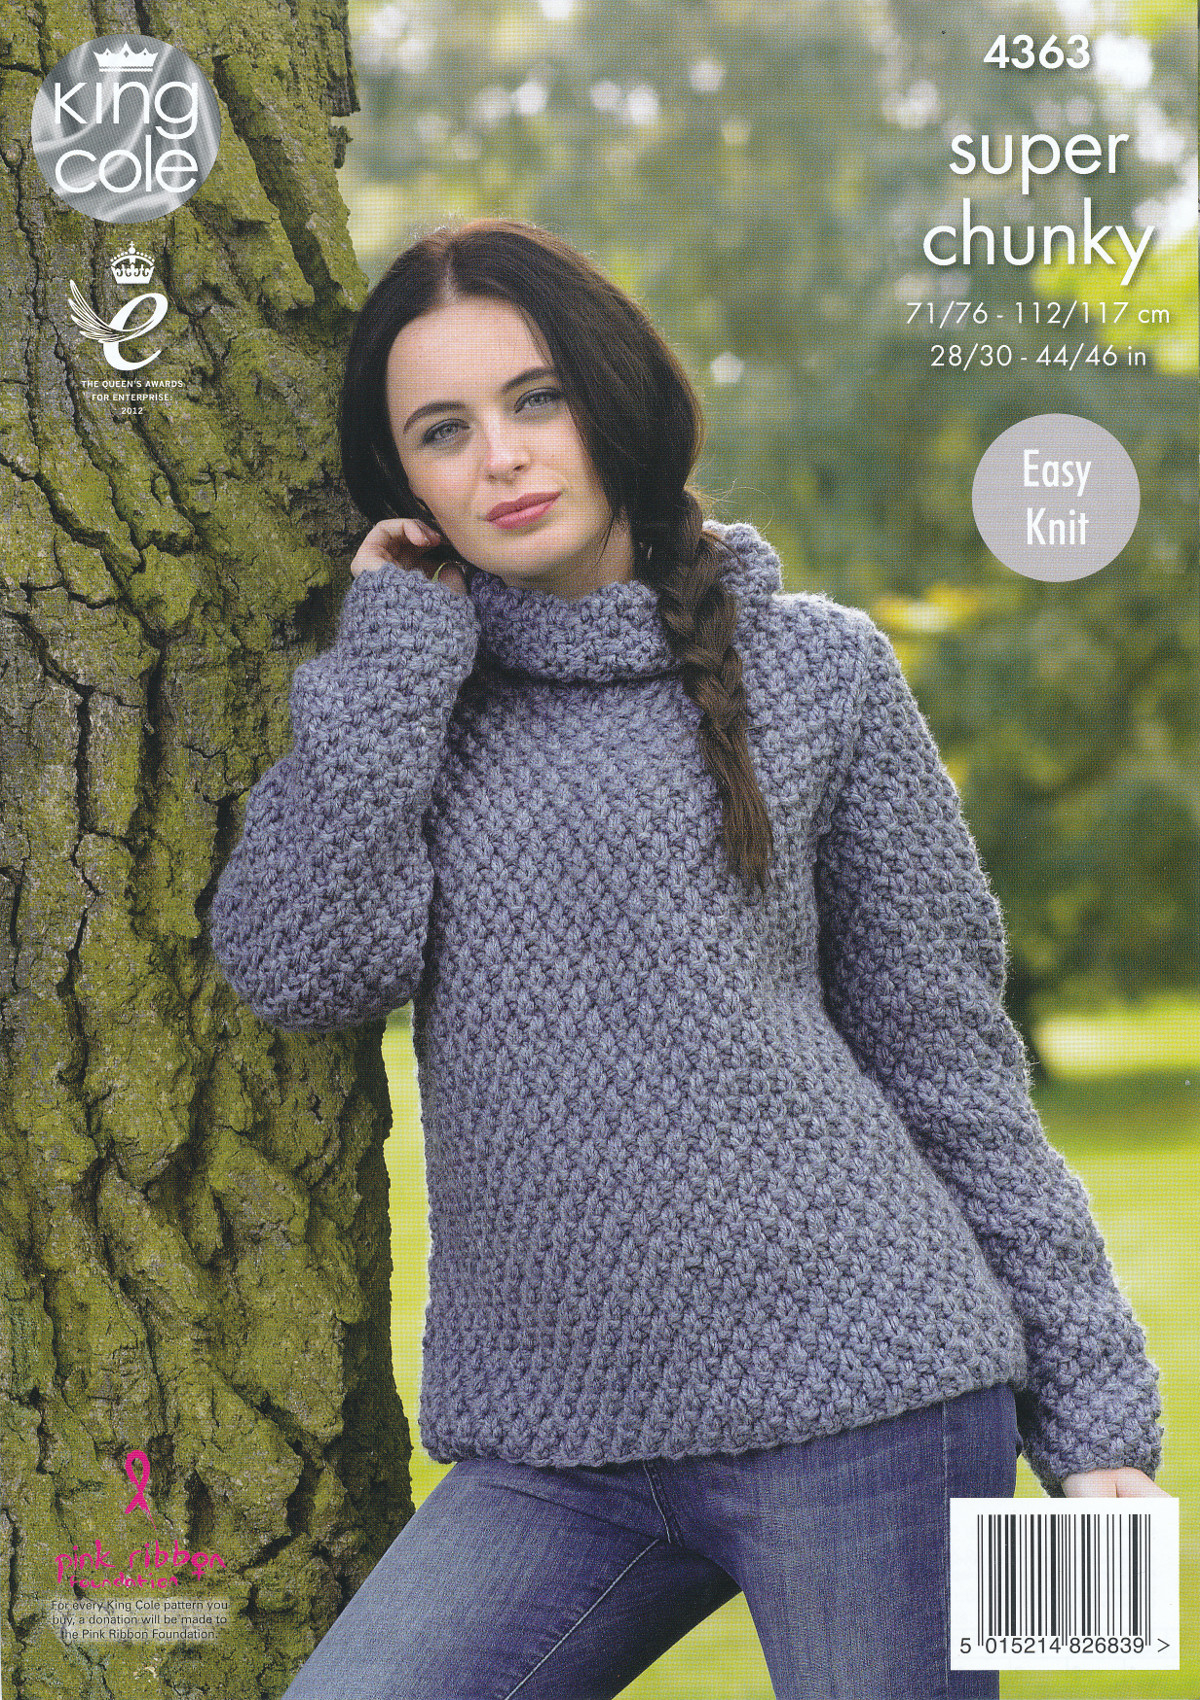 Knitted Jacket Patterns Details About Ladies Super Chunky Knitting Pattern King Cole Easy Knit Sweater Jacket 4363